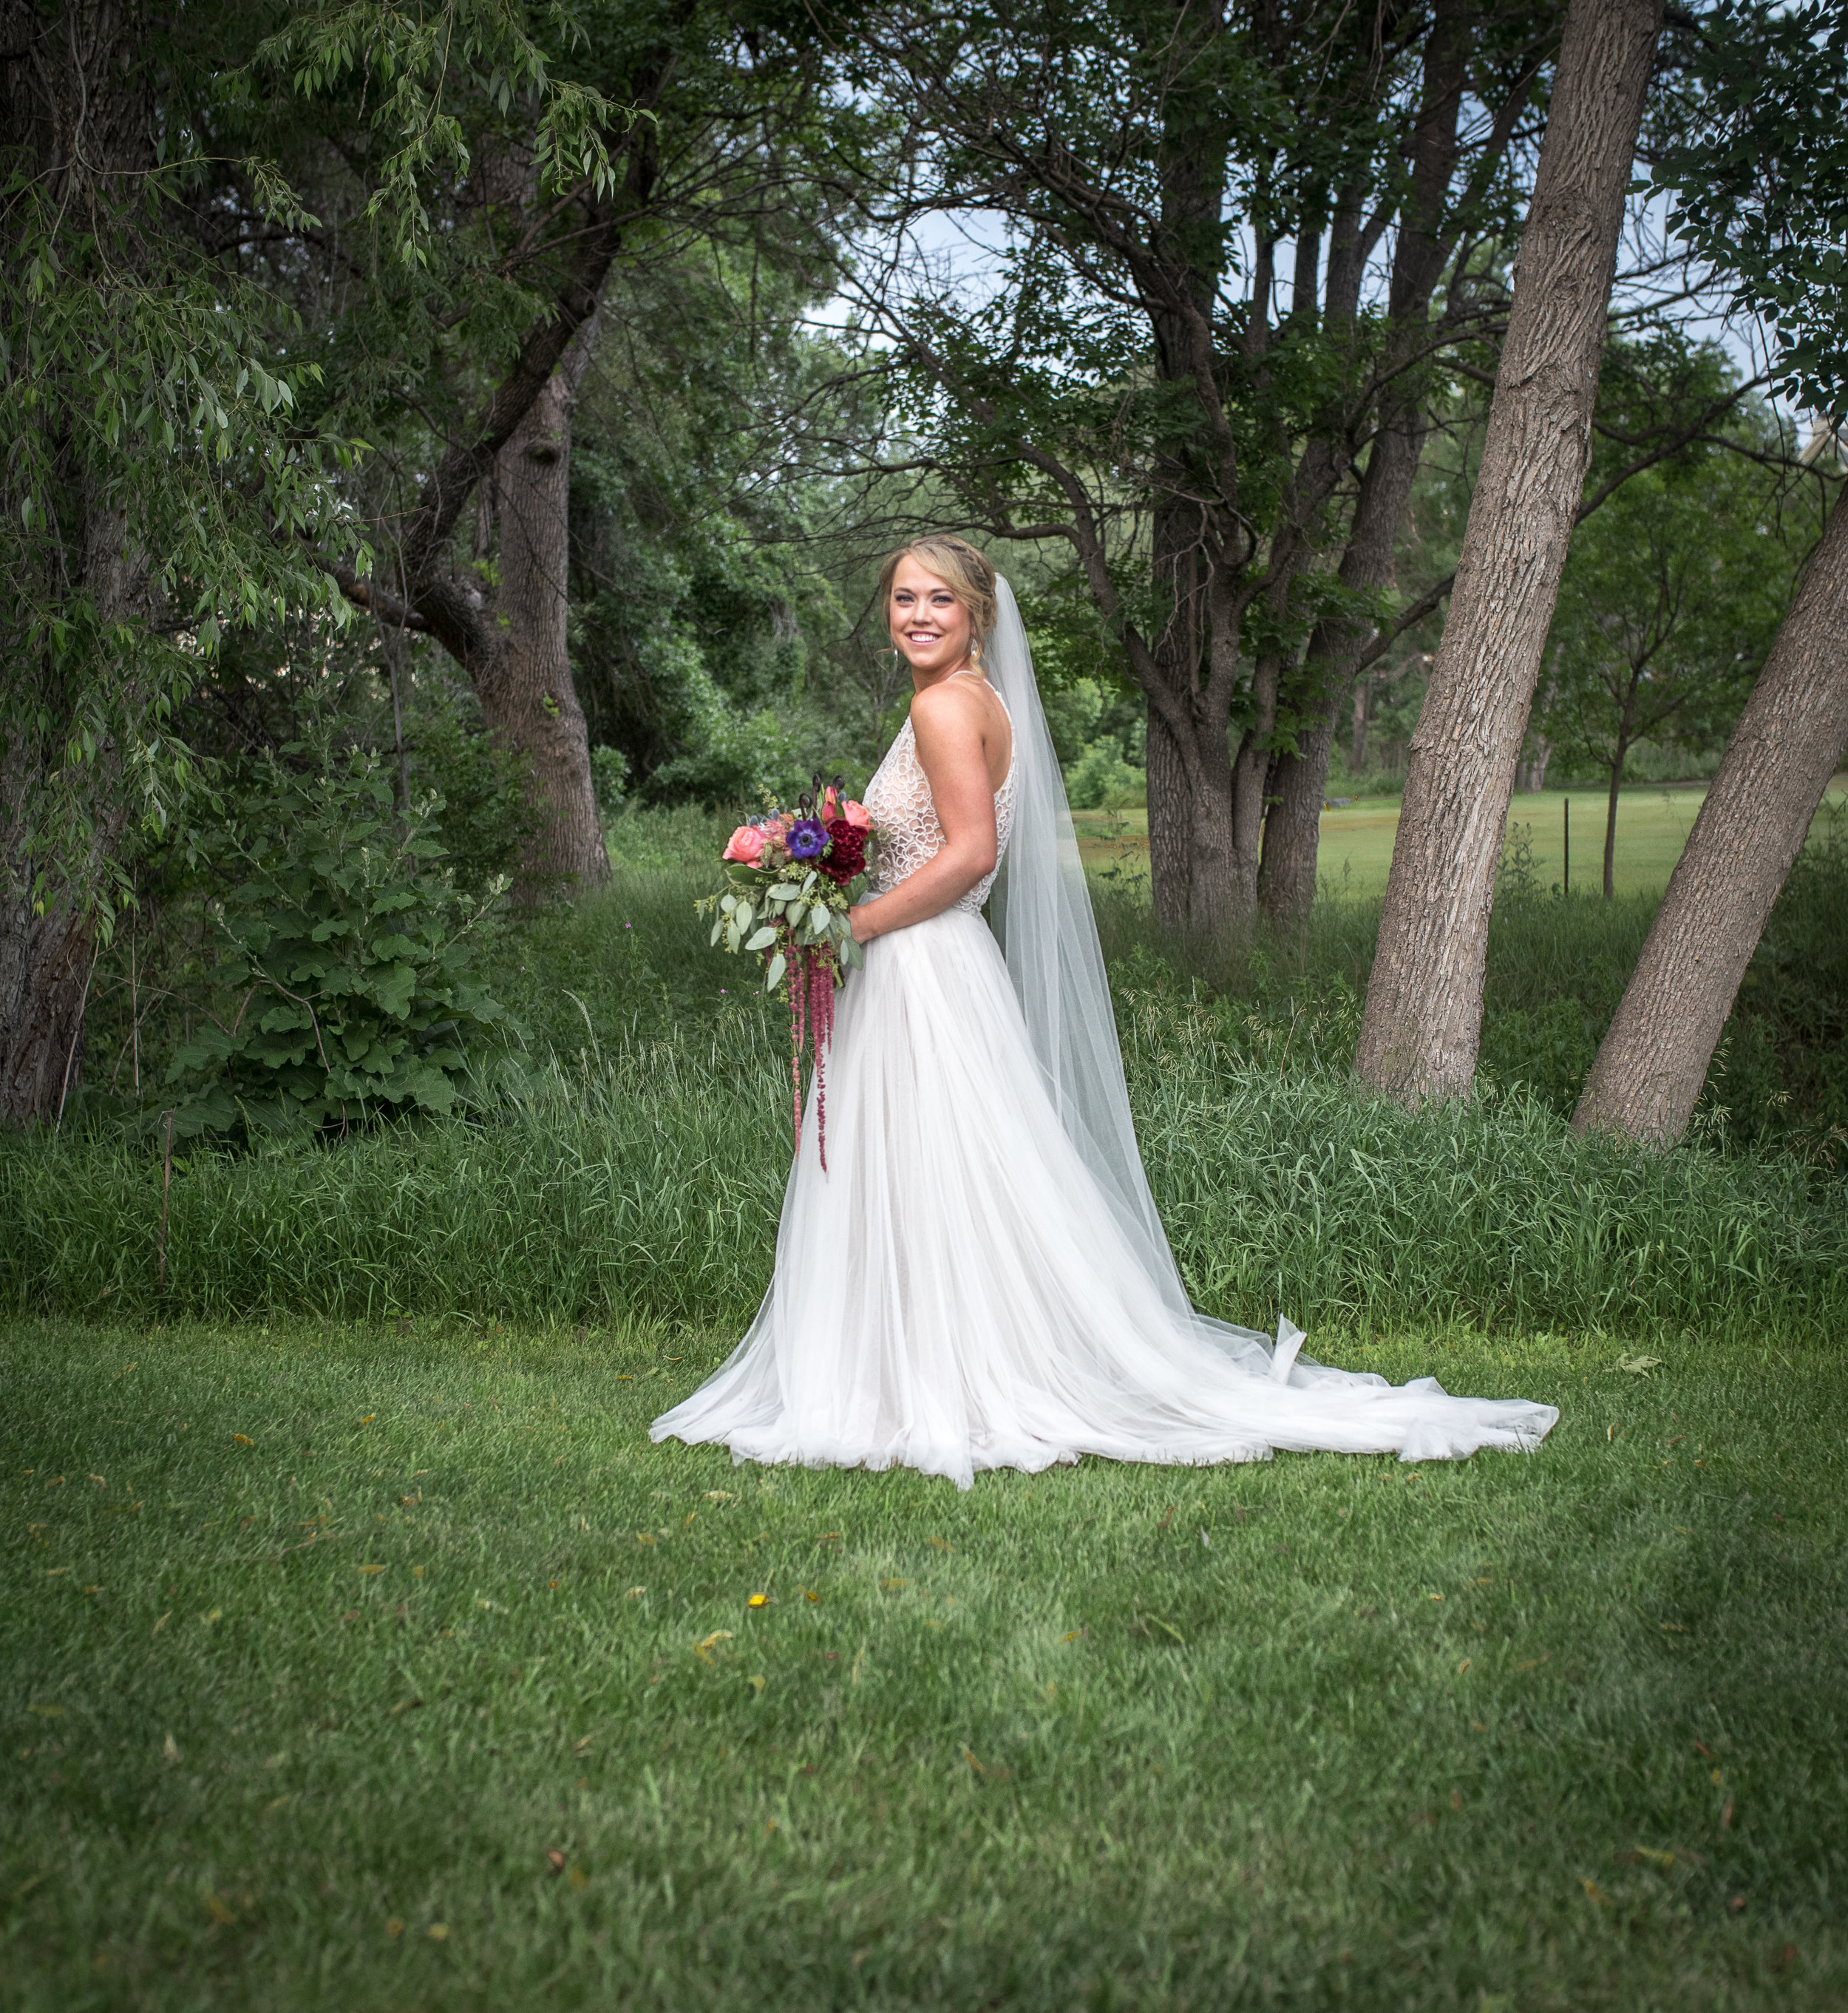 Racoon Creekbridal (1 of 1).jpg